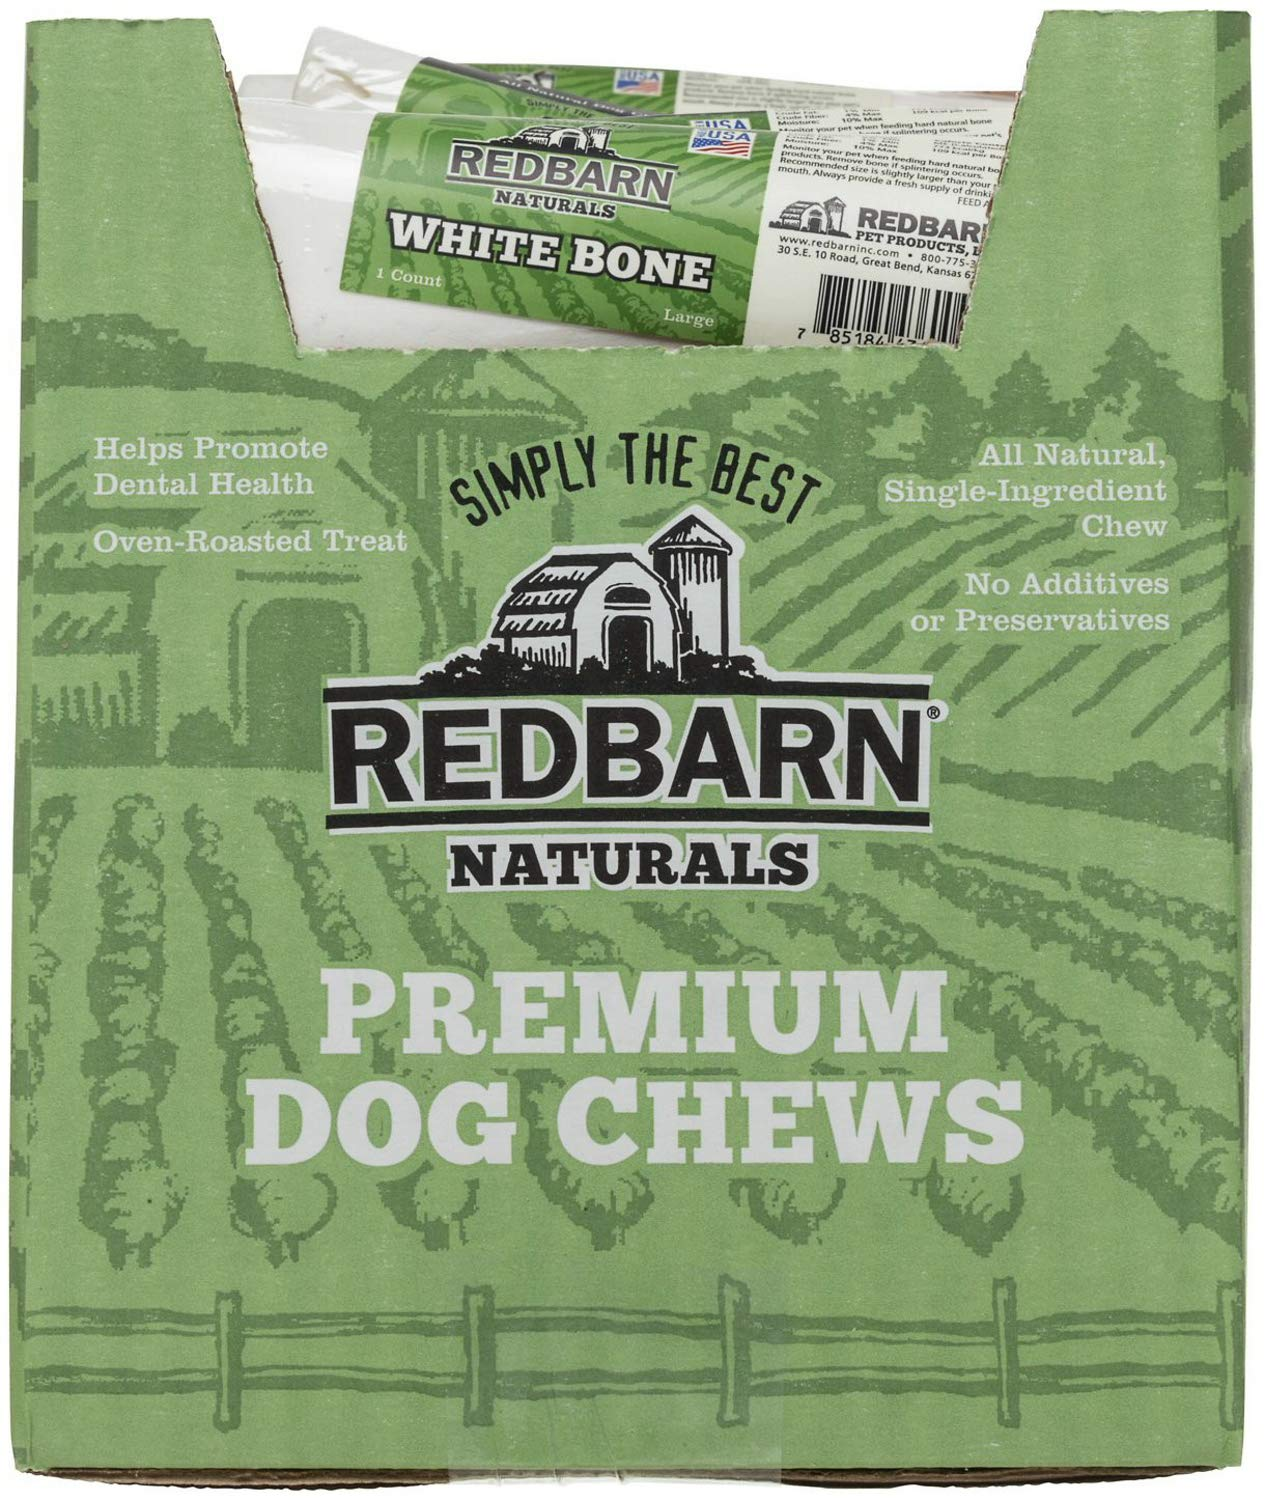 REDBARN White Bone for Dogs, Large, Naturals, 25 Count